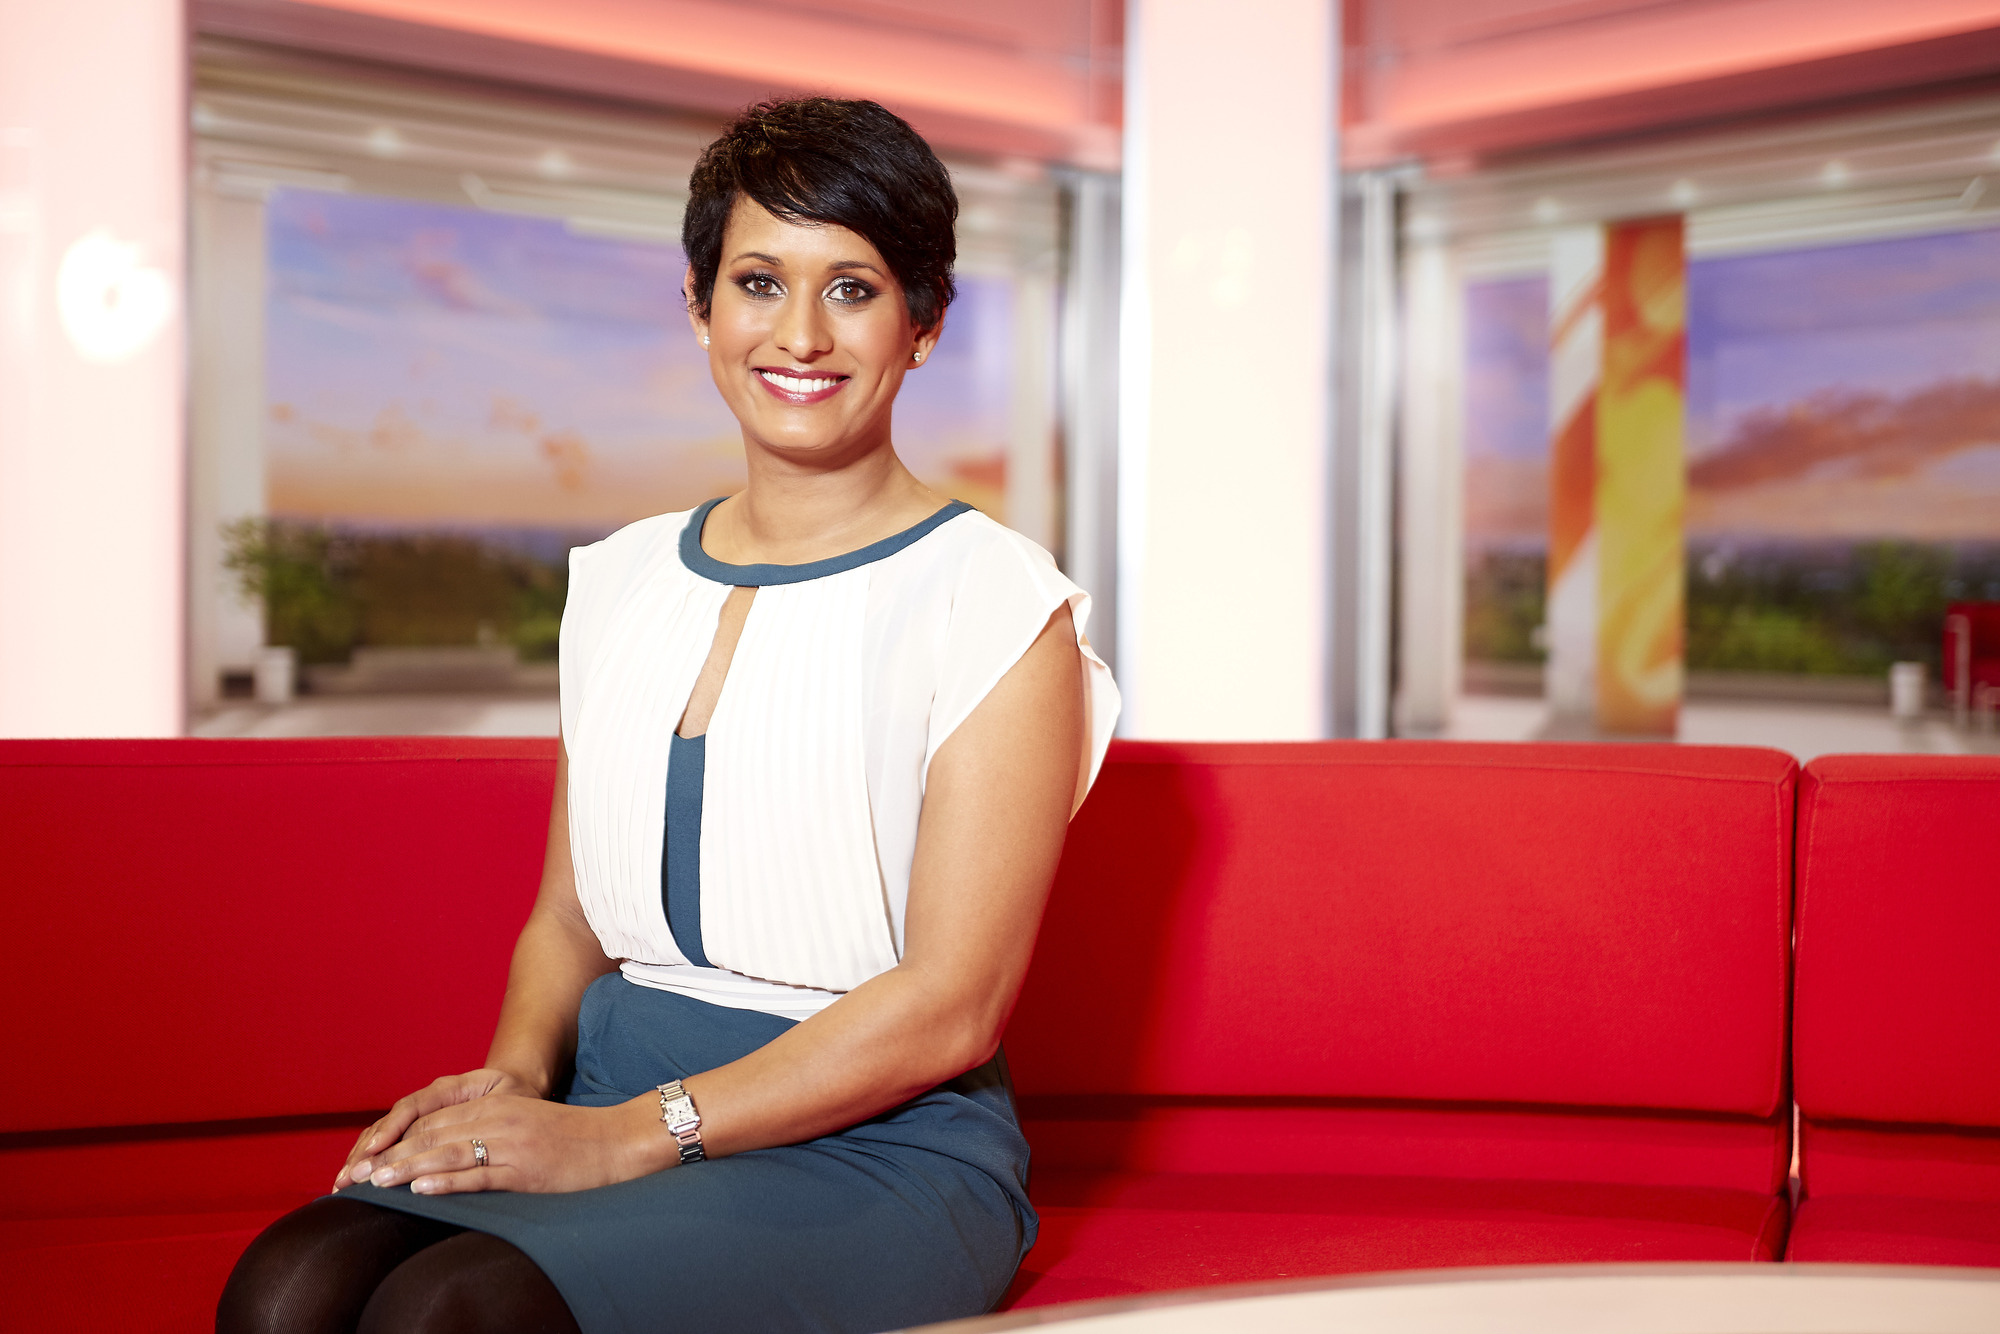 BBC Breakfast's Naga Munchetty joins the Strictly Come Dancing 2016 line-up